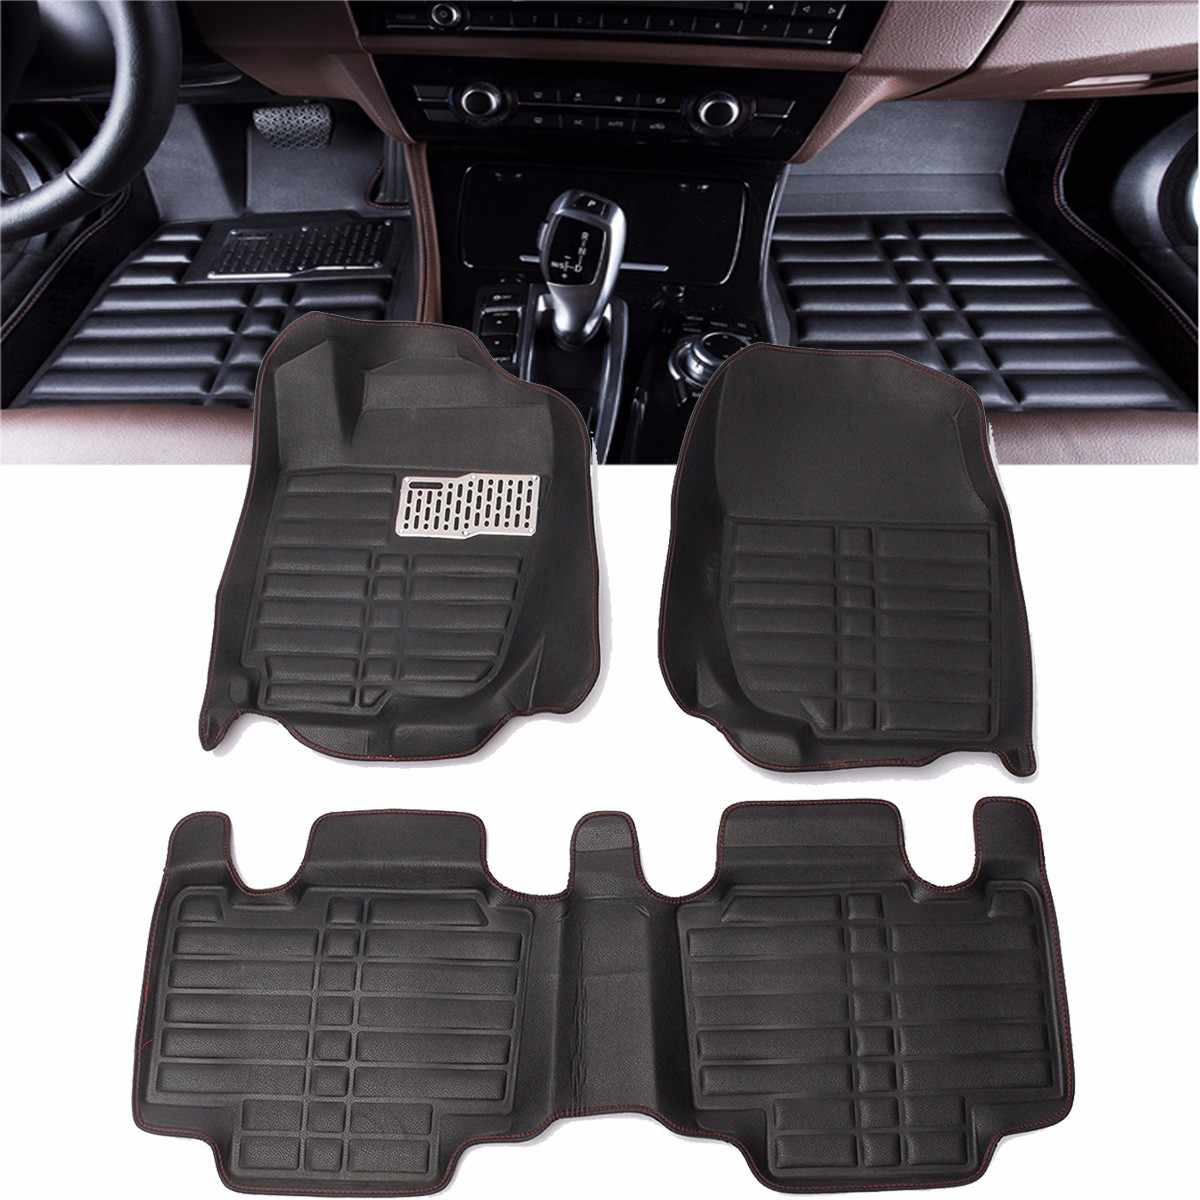 Audew Floor Foot Pad Front + Rear Liner Waterproof Mat For TOYOTA RAV4 2013 2014 2015 2016 Car Styling Carpet Floor Liner